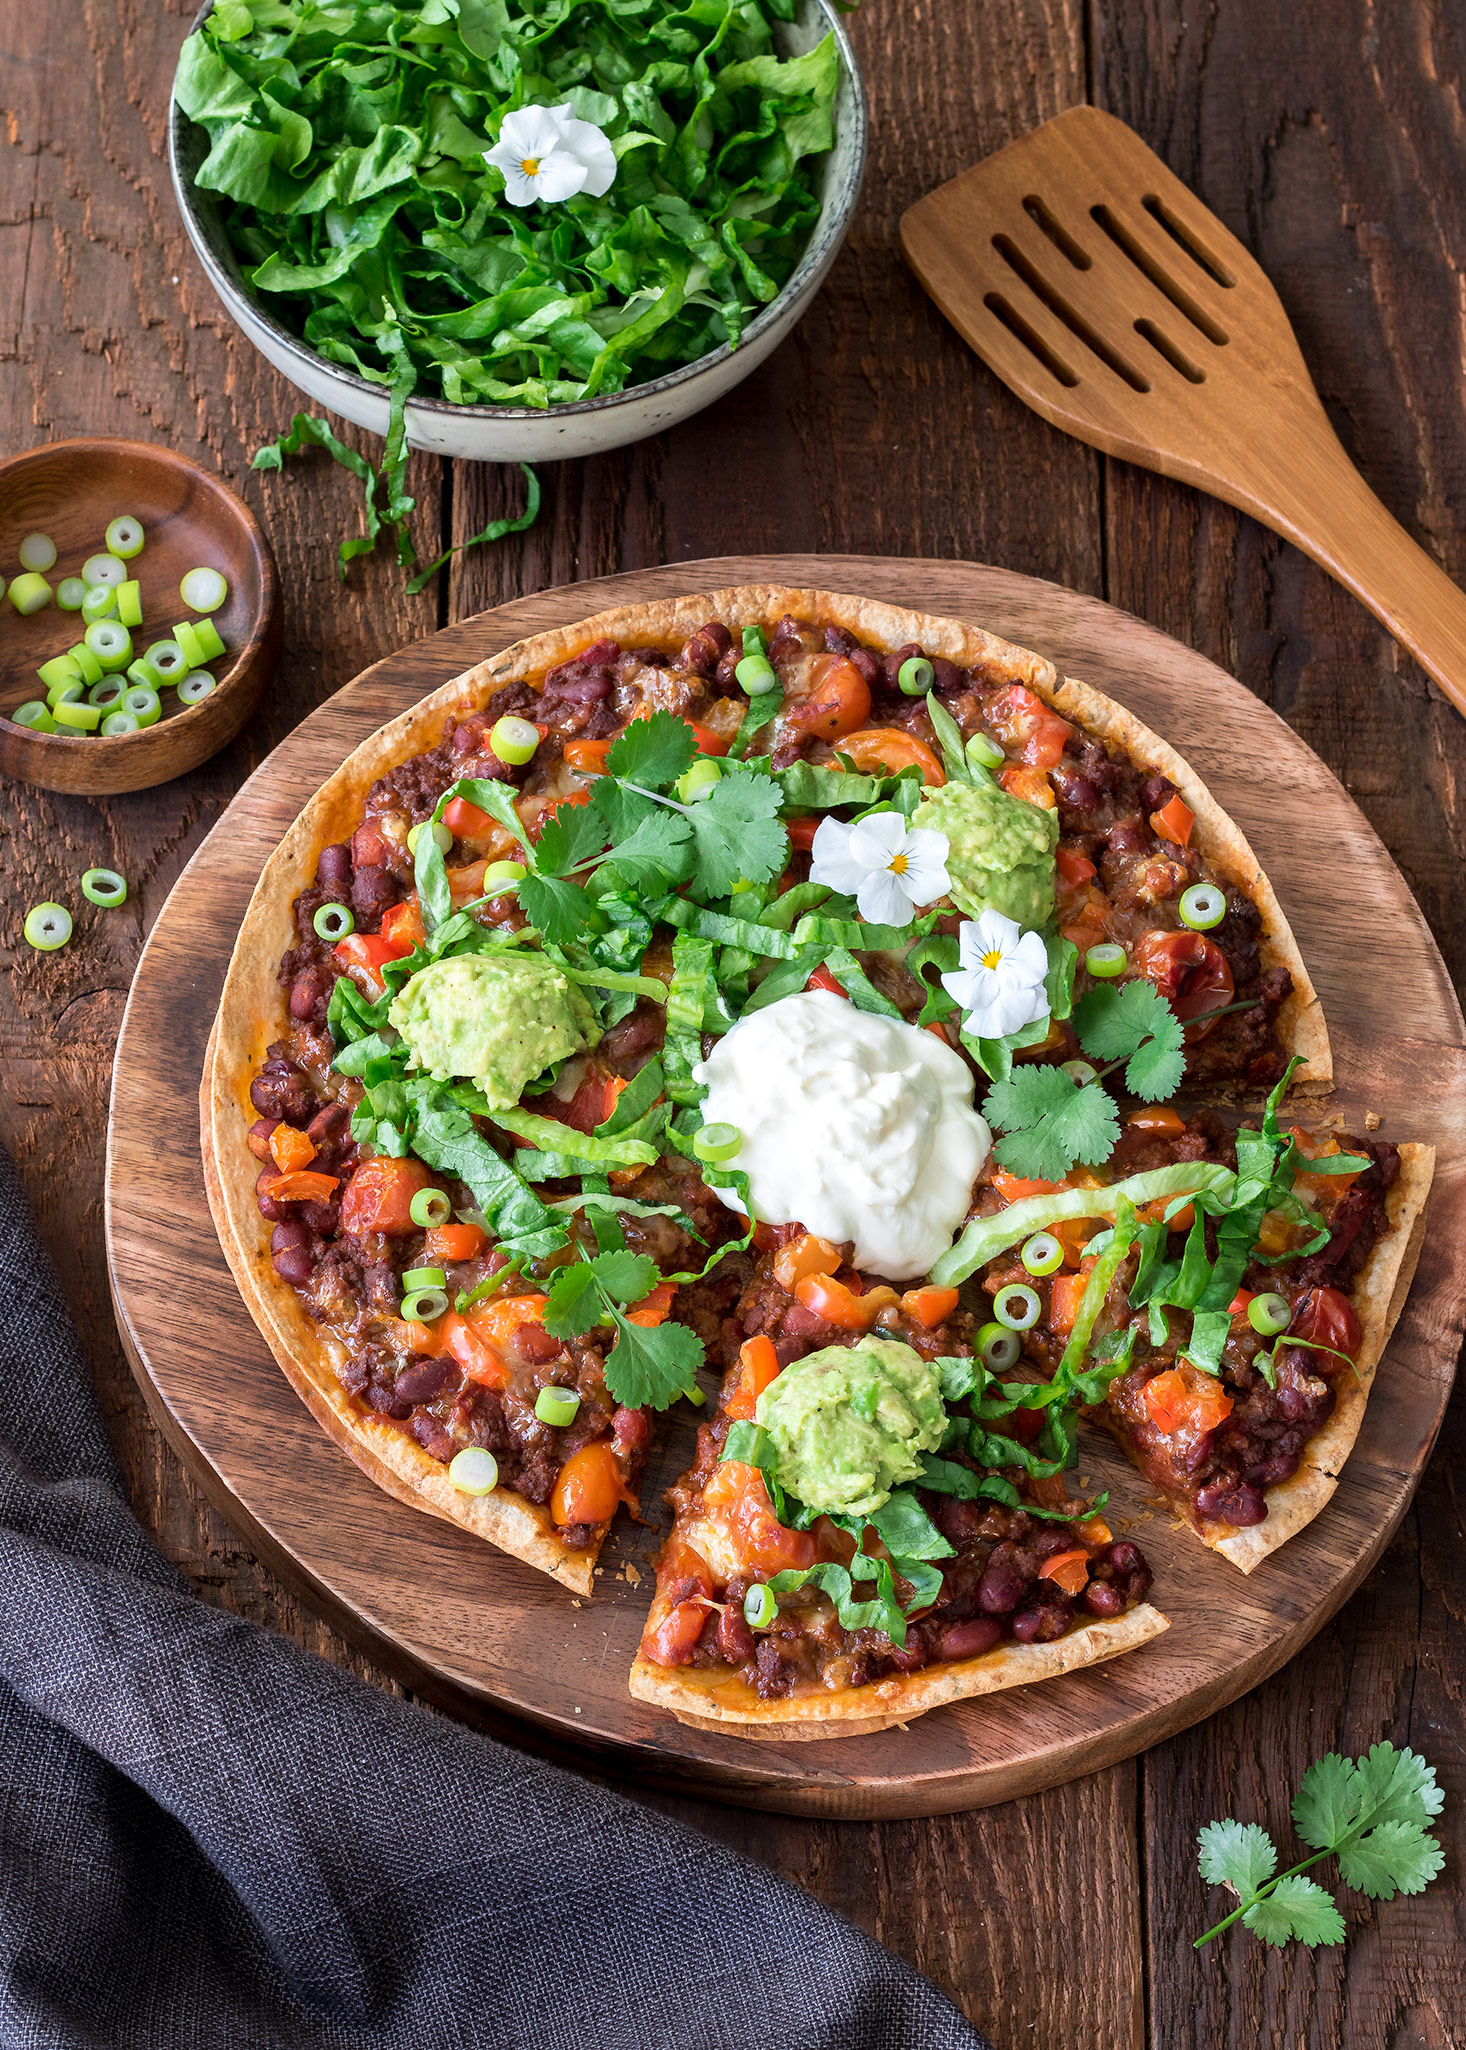 These Mexican-style pizzas are more Tex-Mex than authentic Mexican, but super tasty anyway! They're really easy to prepare, and the wraps make a nice light alternative to regular pizza bases.